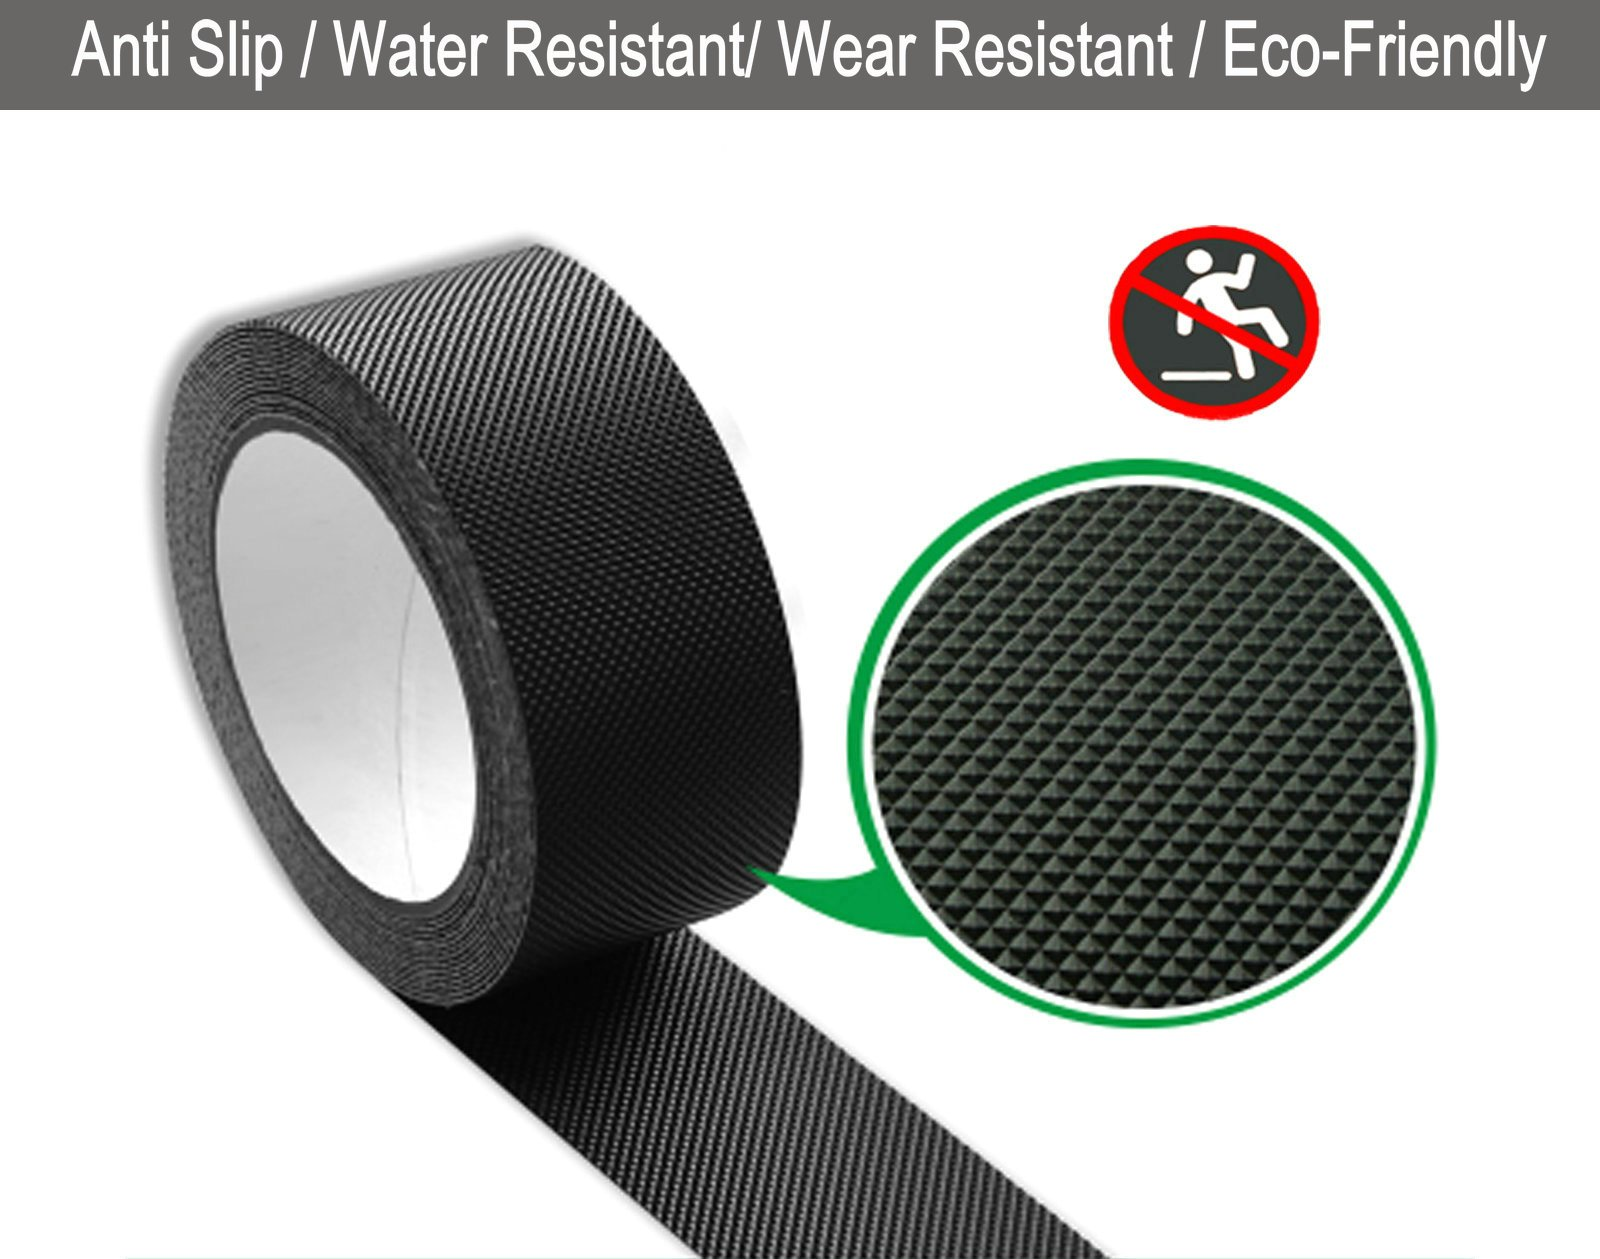 Black Anti Slip Safety Tape, Water Resistant High Traction Grip for Stairs, Steps, Boats, Garage, Ladders, Wear Resistant Strong Adhesive Rubberized Steady Treads Indoor Or Outdoor (1'' x16.4')